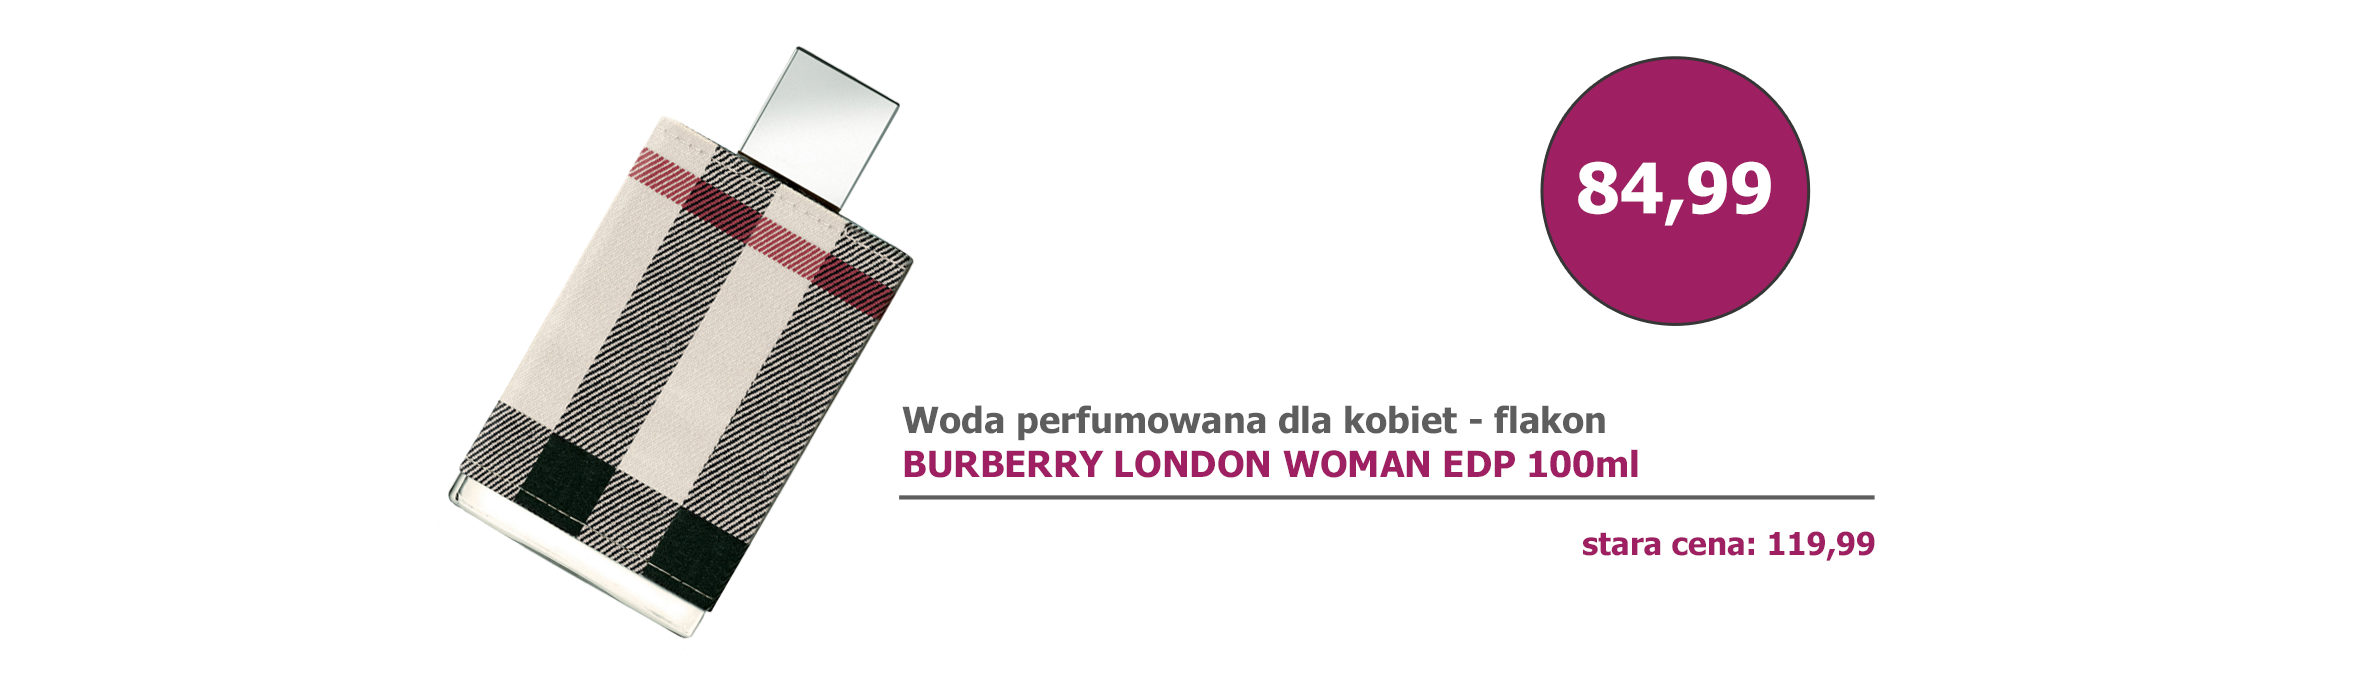 Burberry London Woman edp 100ml flakon - promocja